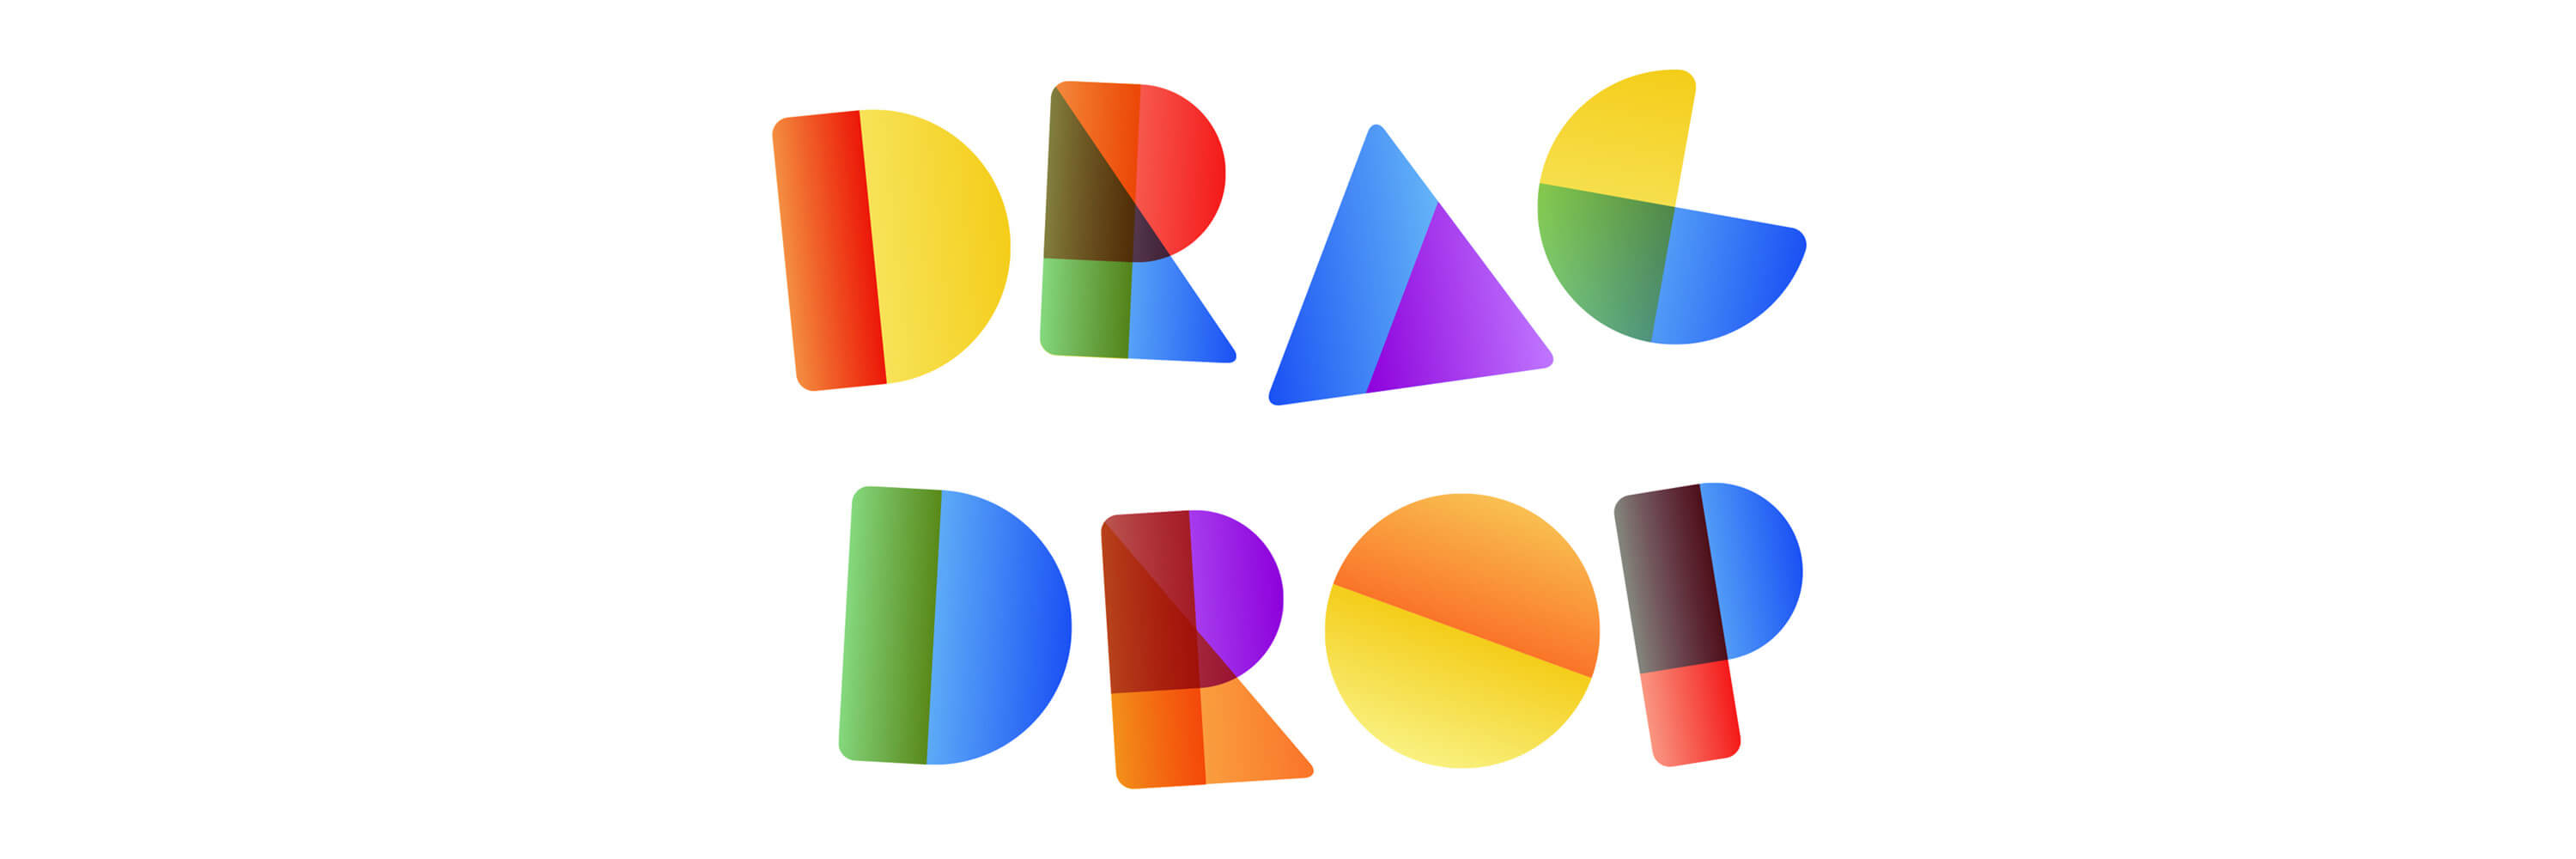 dragdrop_part_02_logo